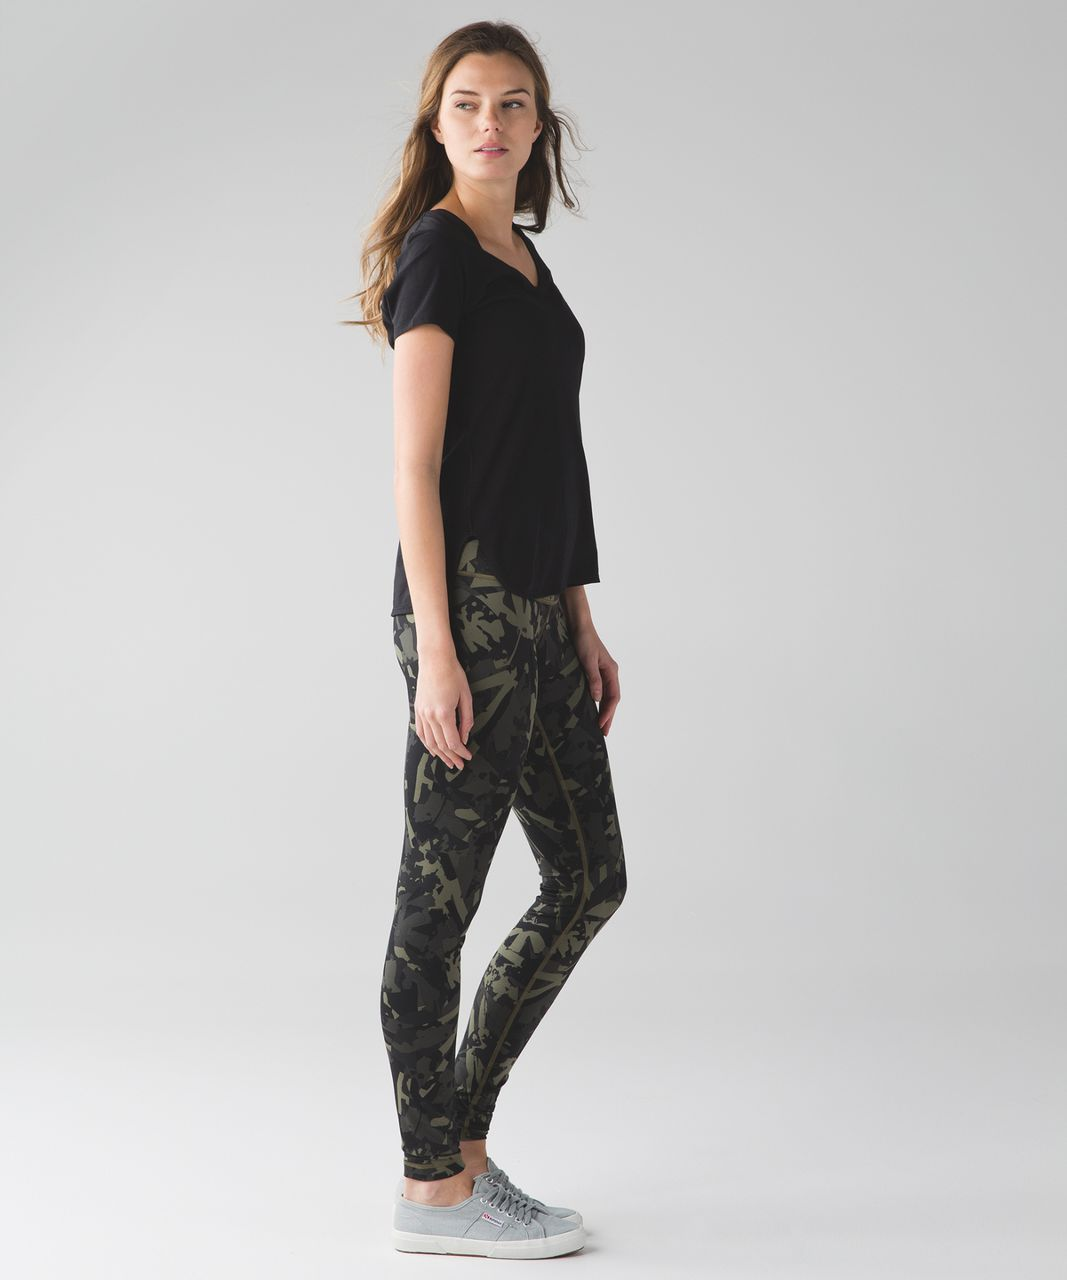 Lululemon Wunder Under Pant (Hi-Rise) - Pop Cut Fatigue Green Black